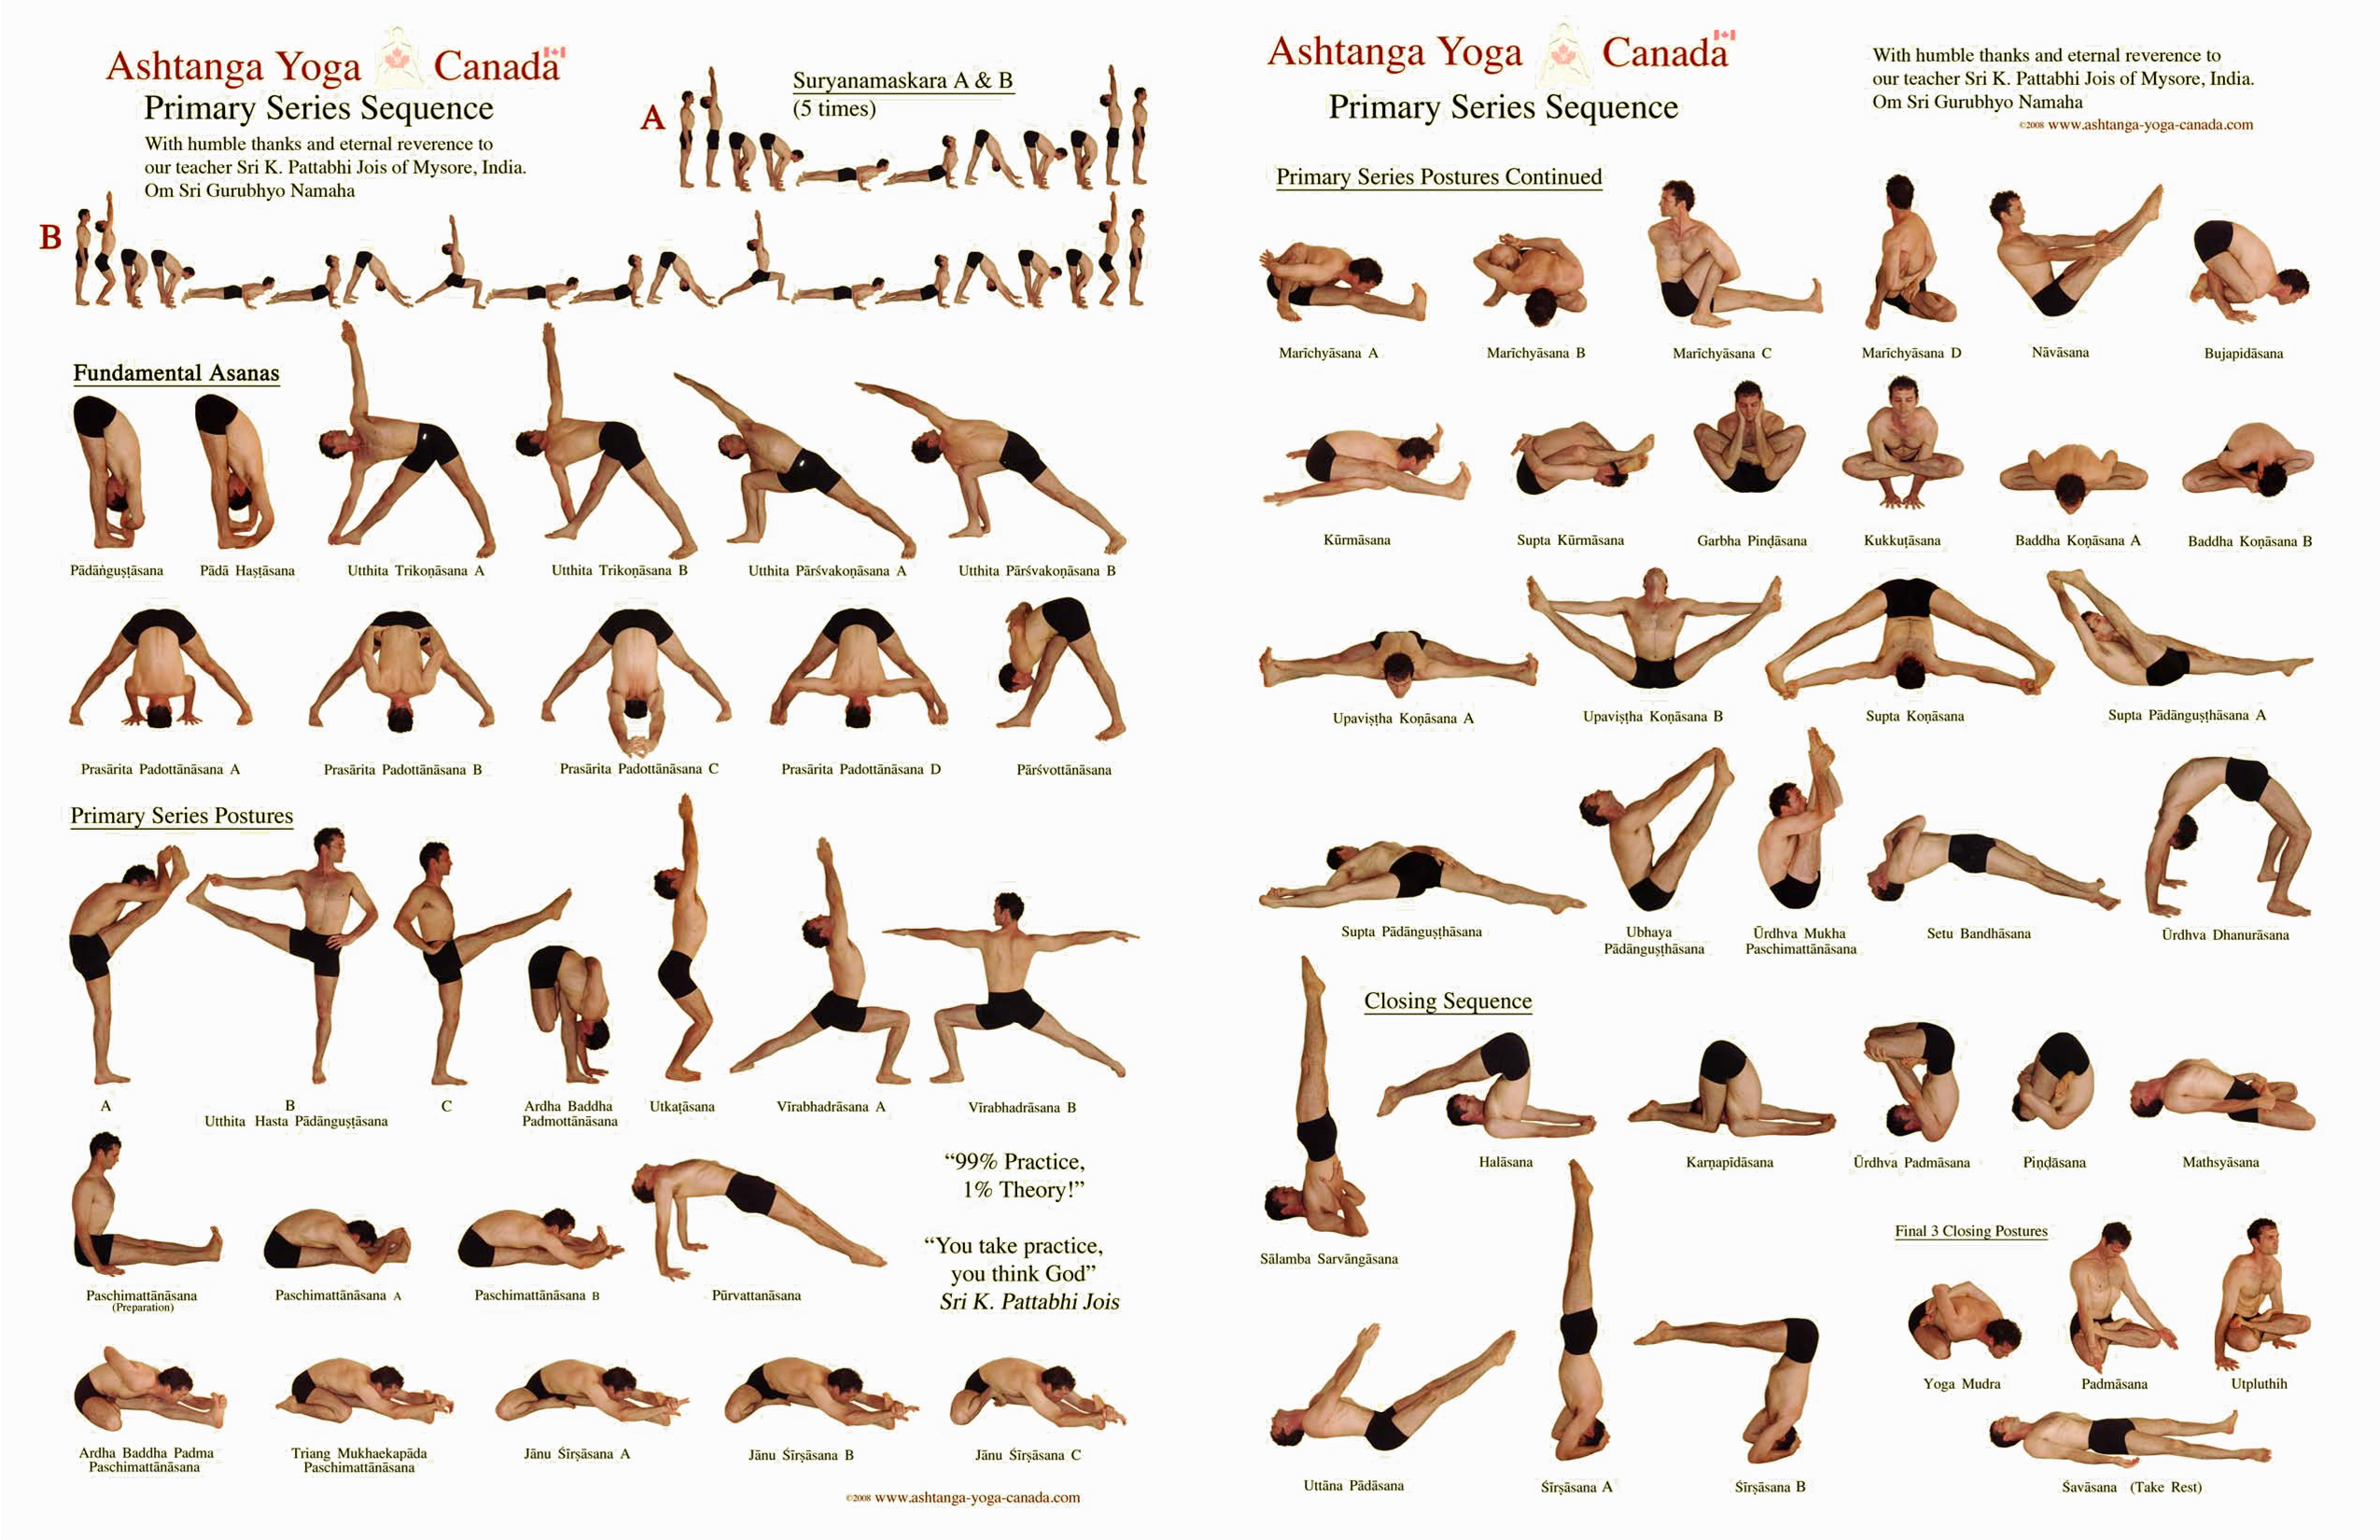 Ashtanga Yoga Root Of All Modern Vinyasa Flow Practices Yoga District